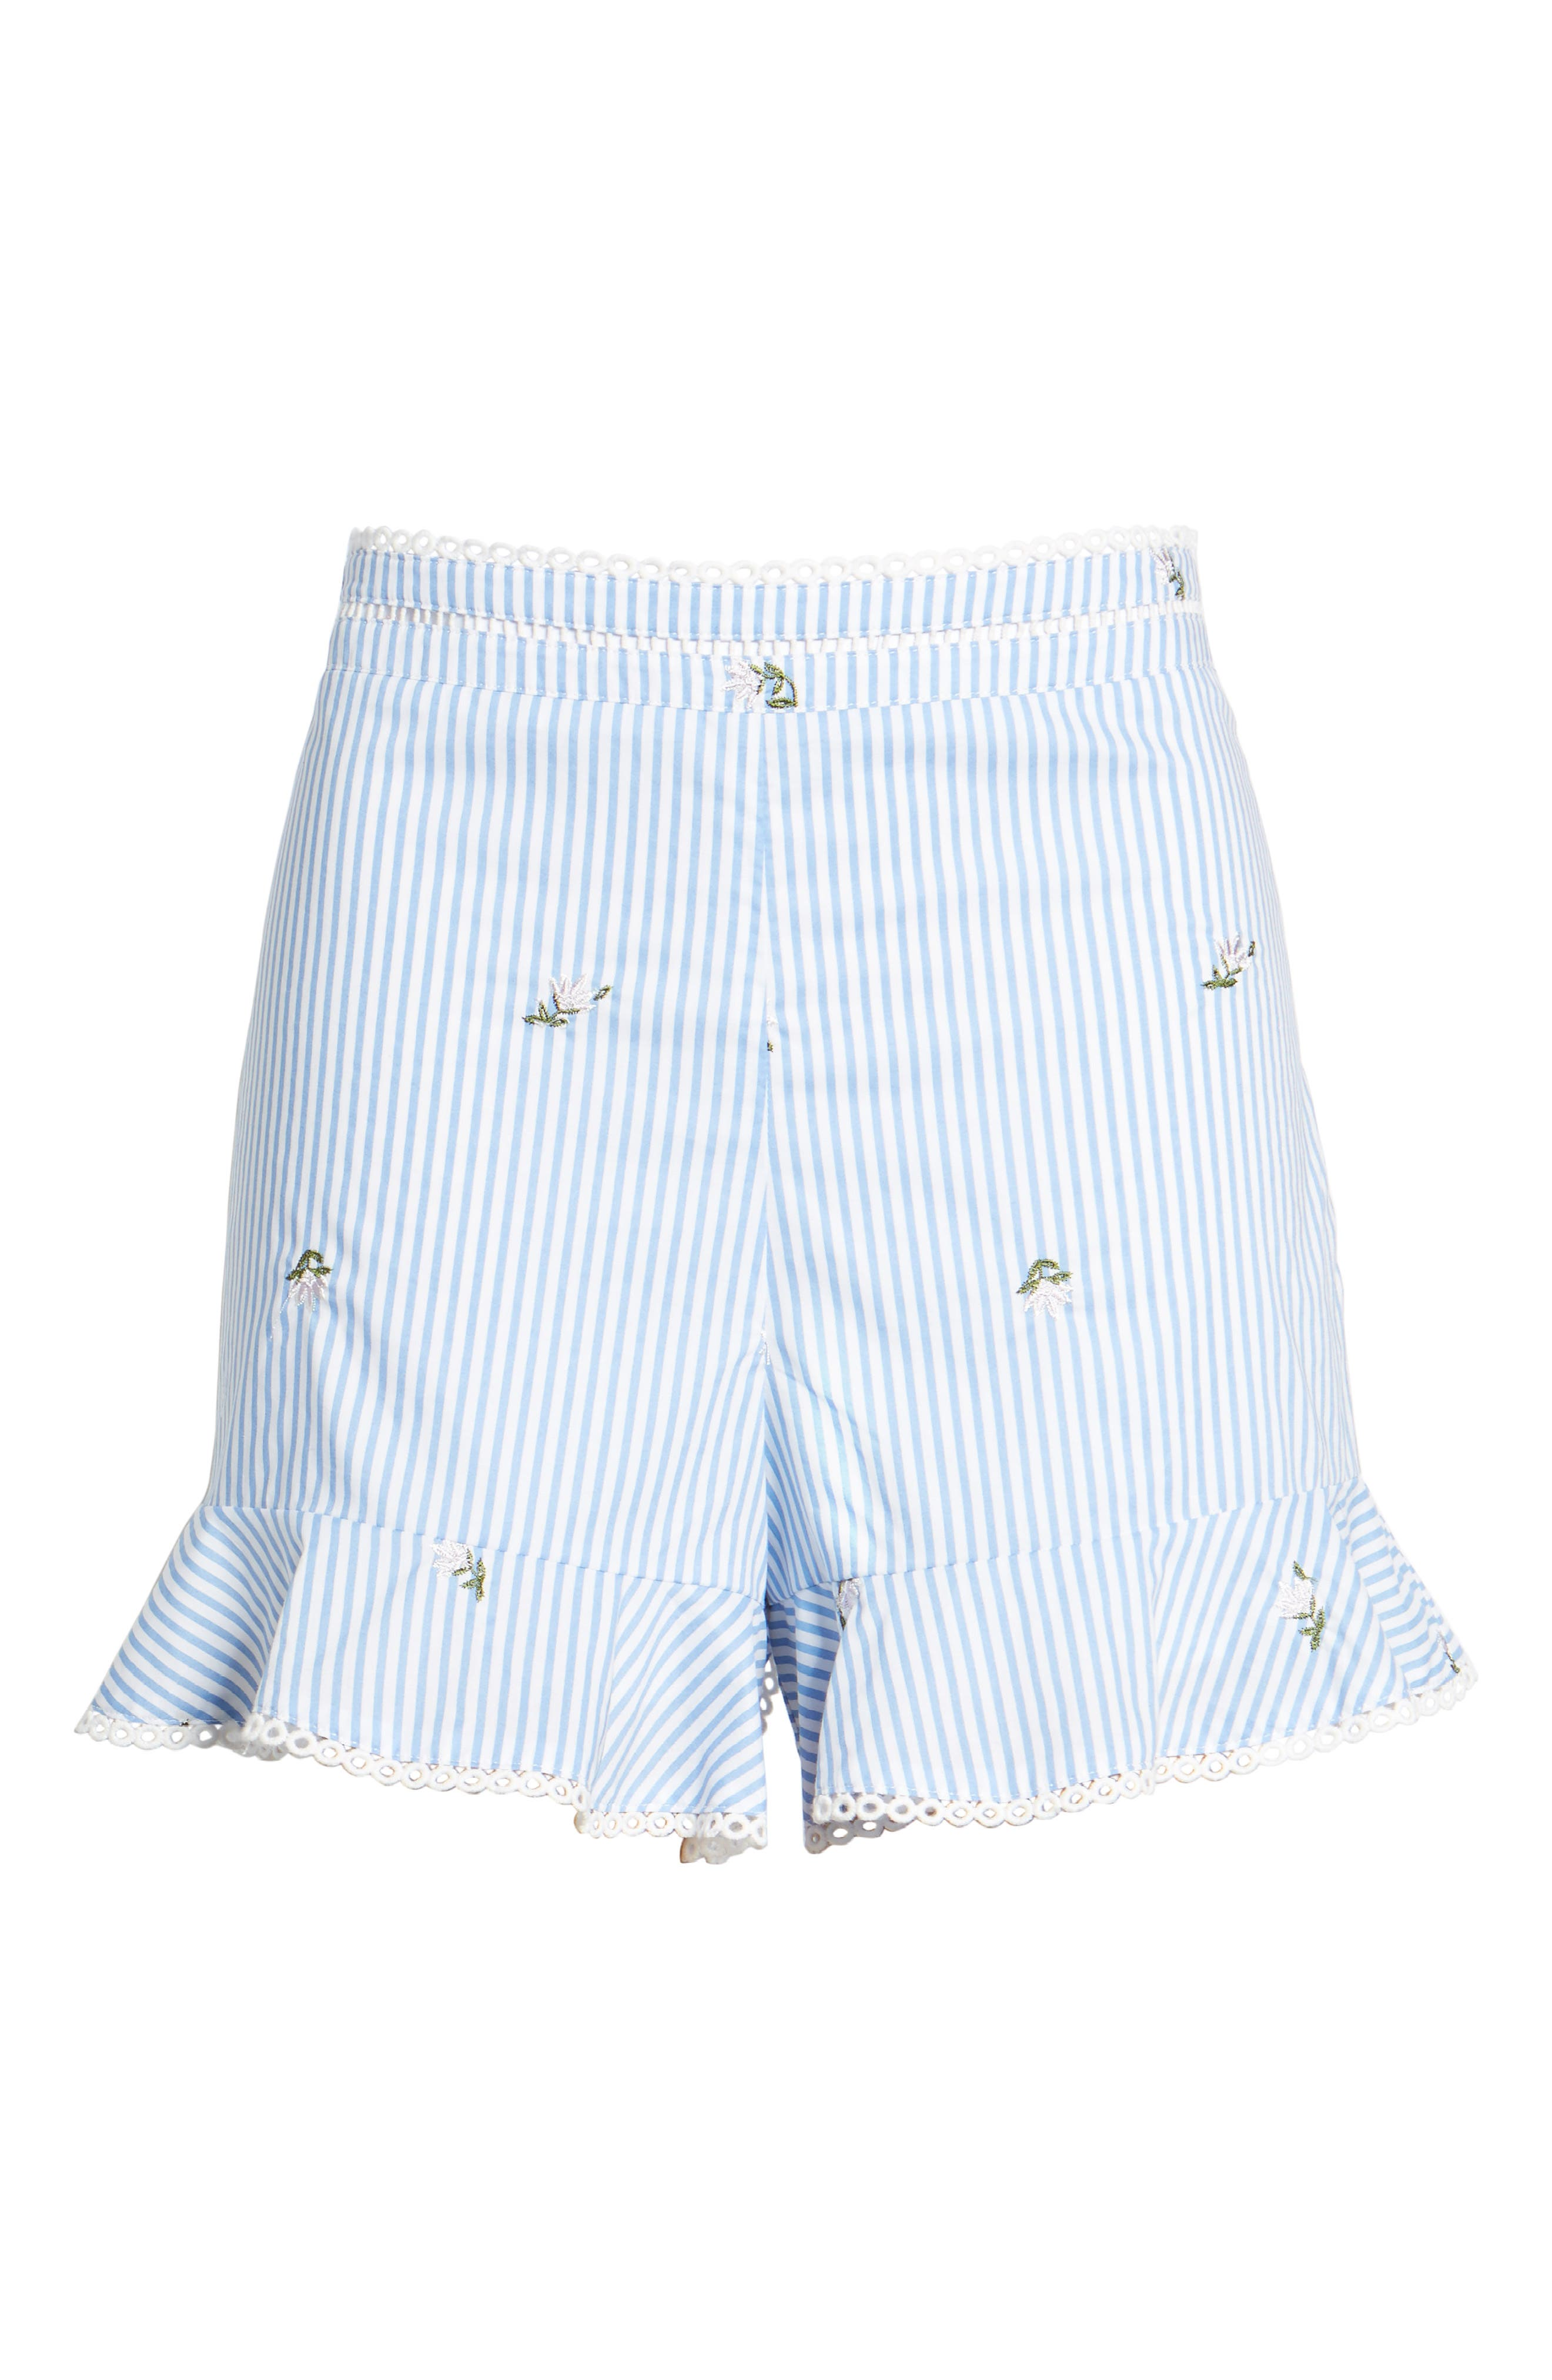 Embroidered Shorts,                             Alternate thumbnail 6, color,                             Blue/ Ivory Stripe